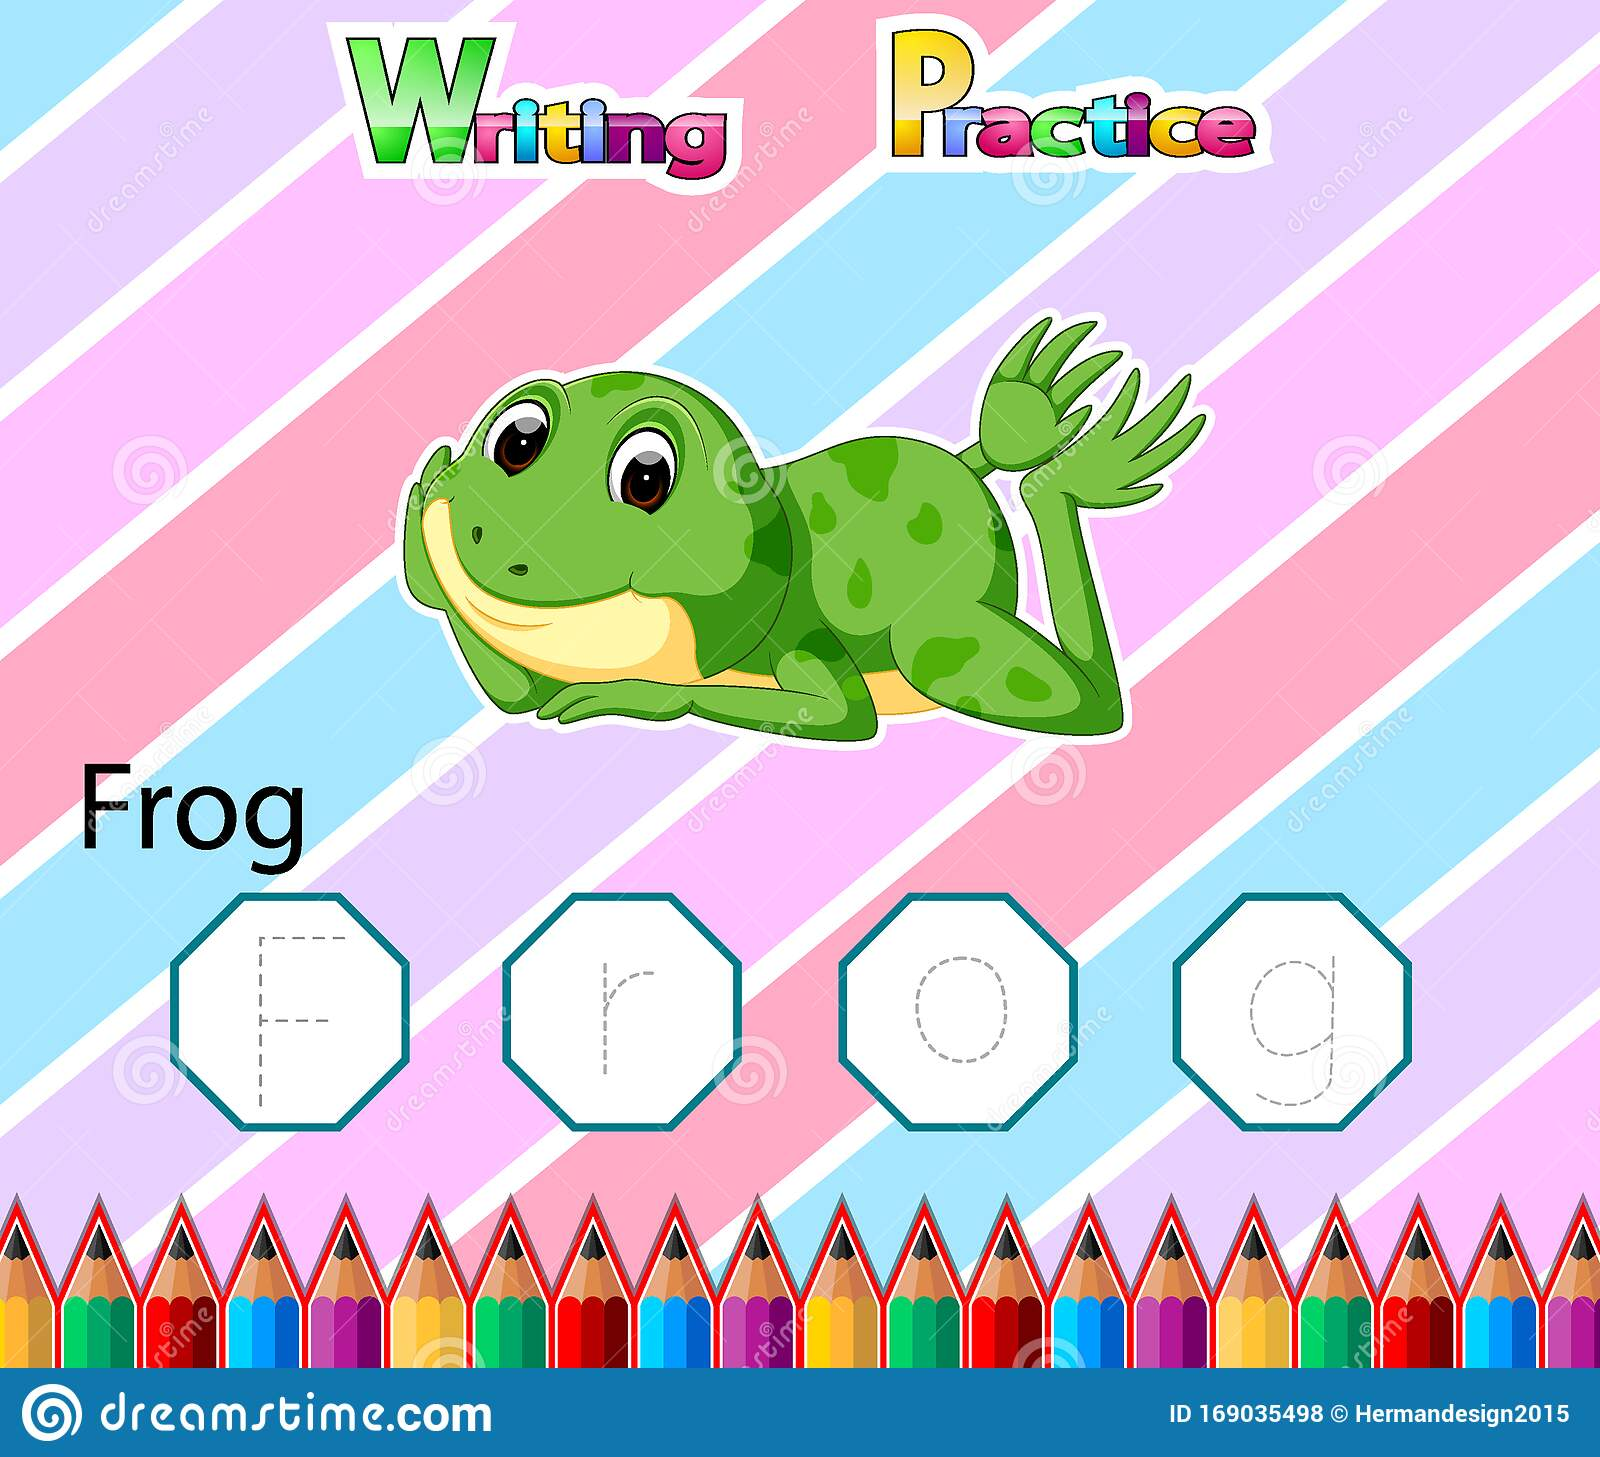 Worksheet Writing Practice Alphabet F For Frog Stock